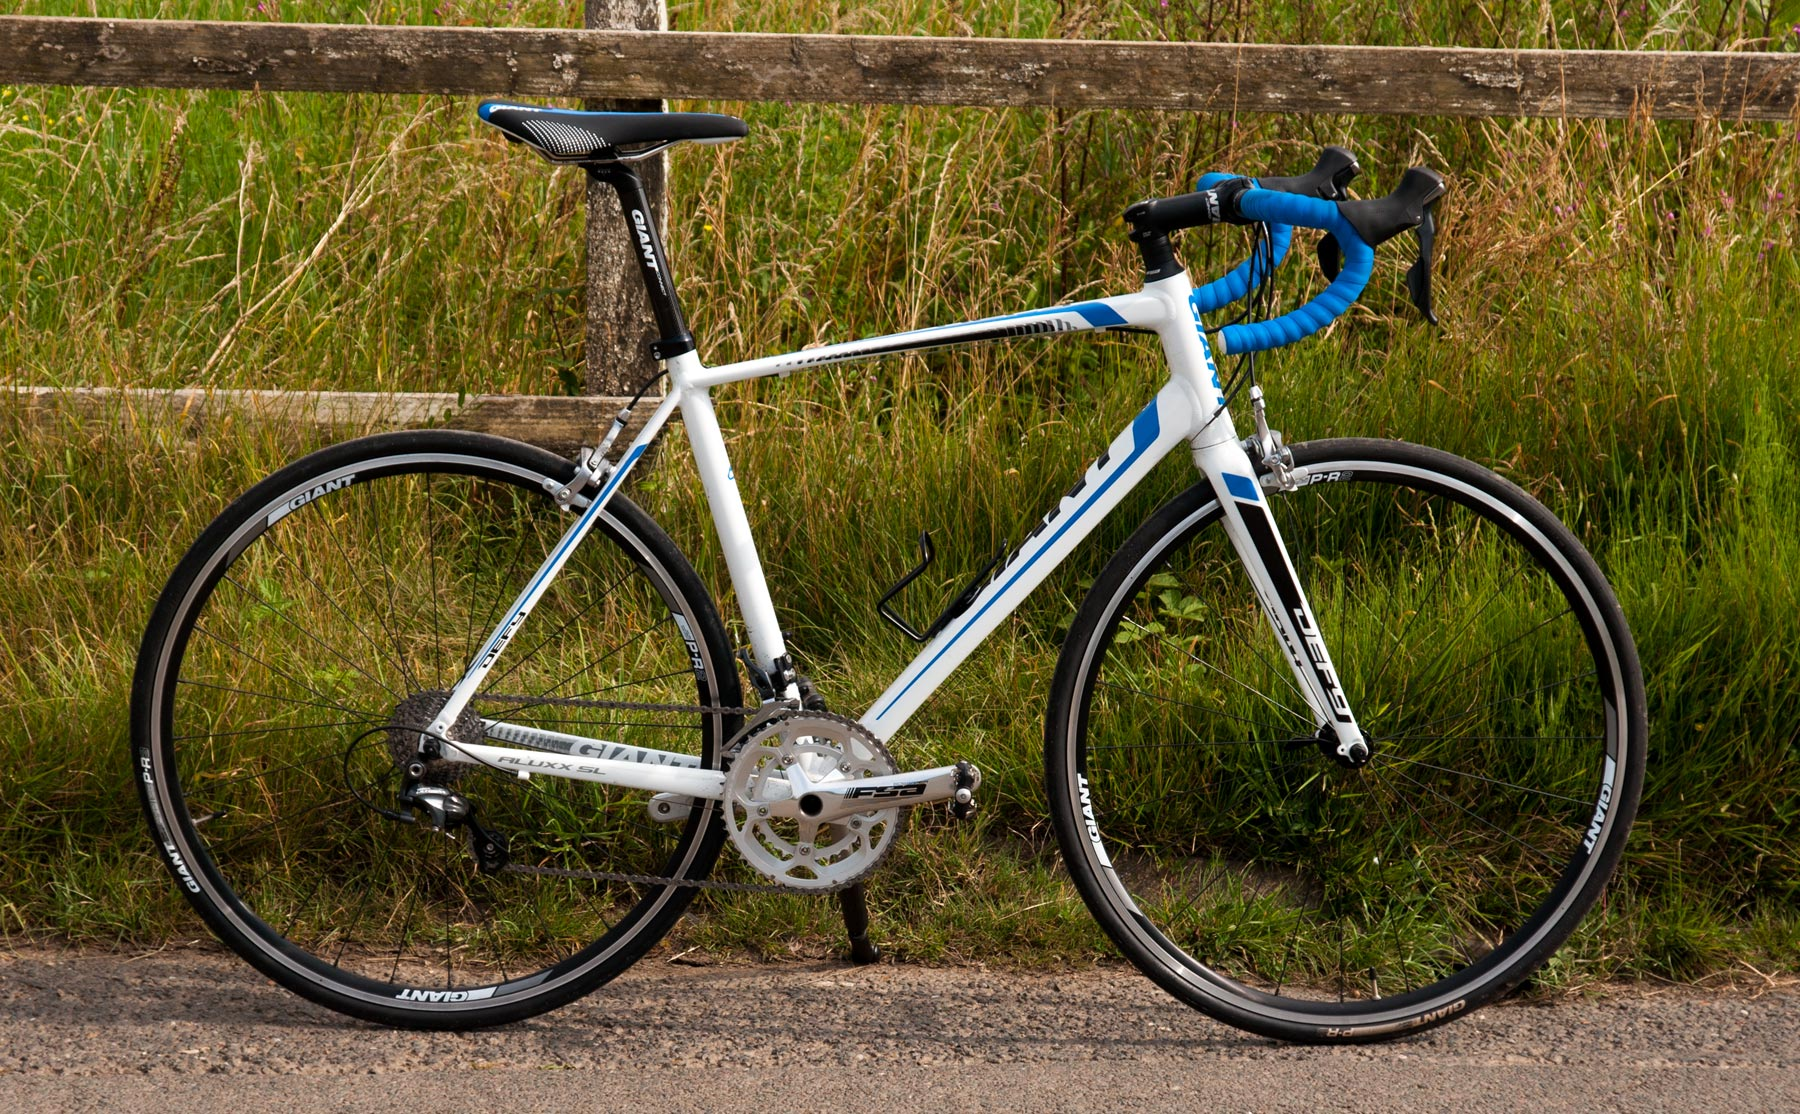 69a072ccc87 Giant Defy 0 2014 review - The Bike List